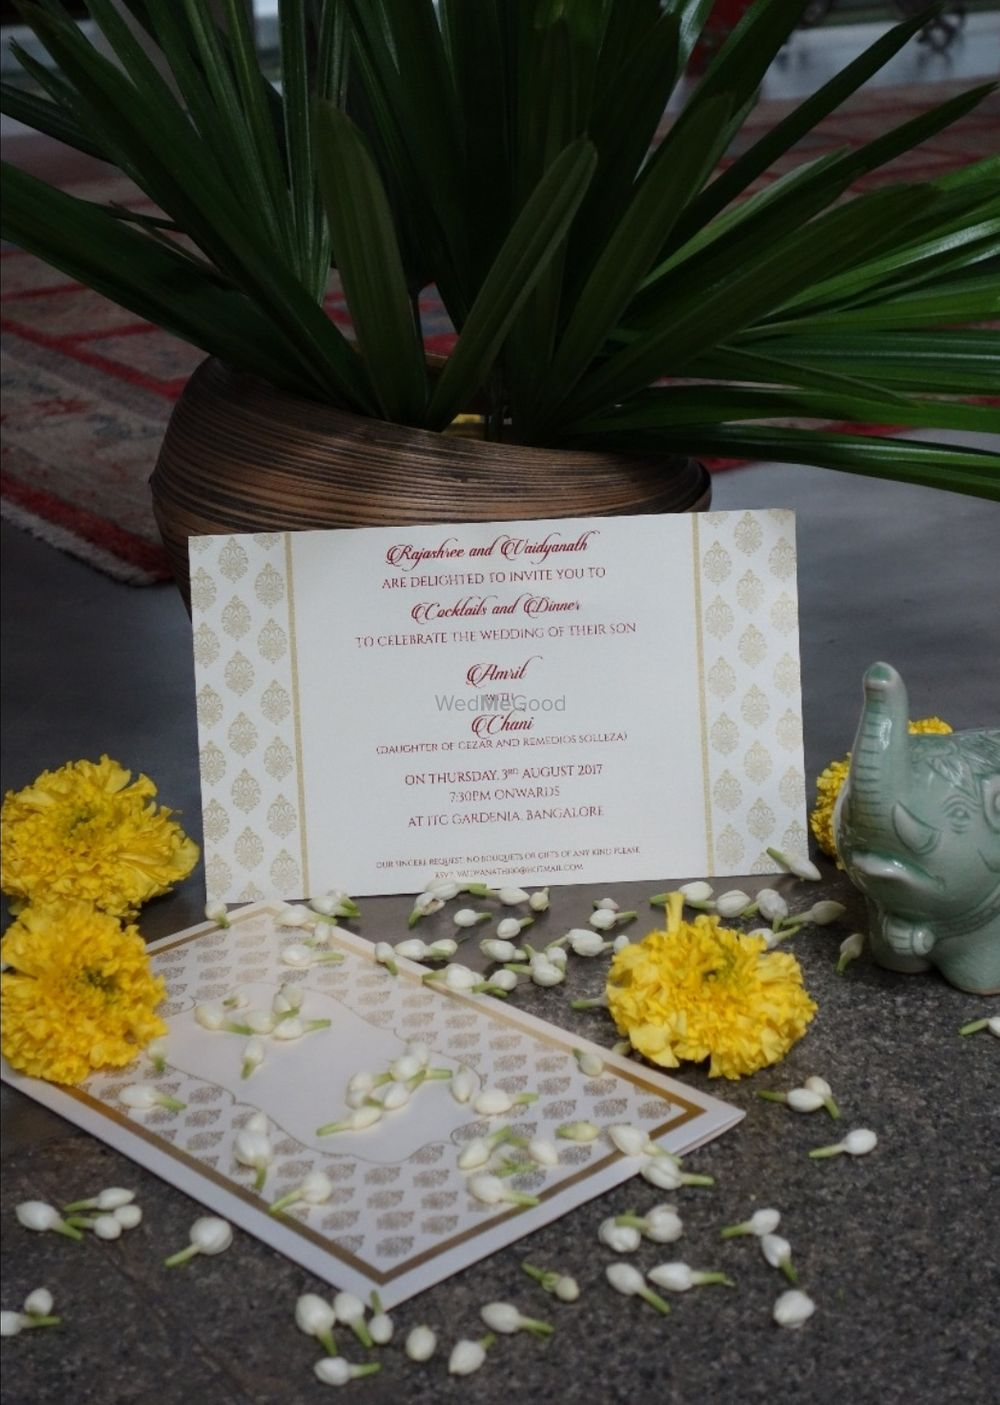 Photo By Kiana - Bespoke Invitations and Stationery  - Invitations